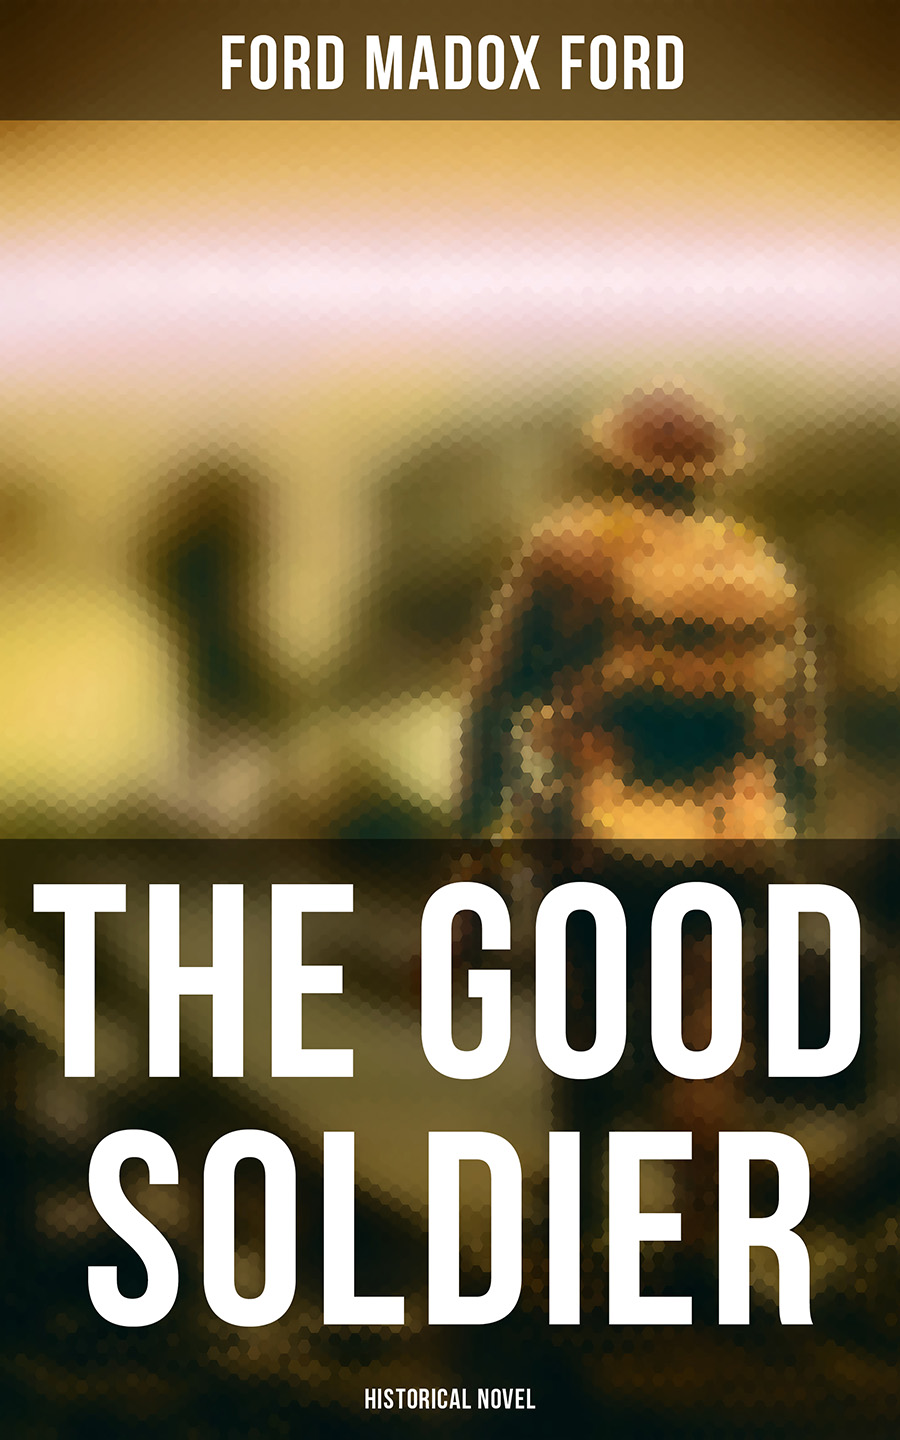 Ford Madox Ford The Good Soldier (Historical Novel) ford madox ford koniec defilady